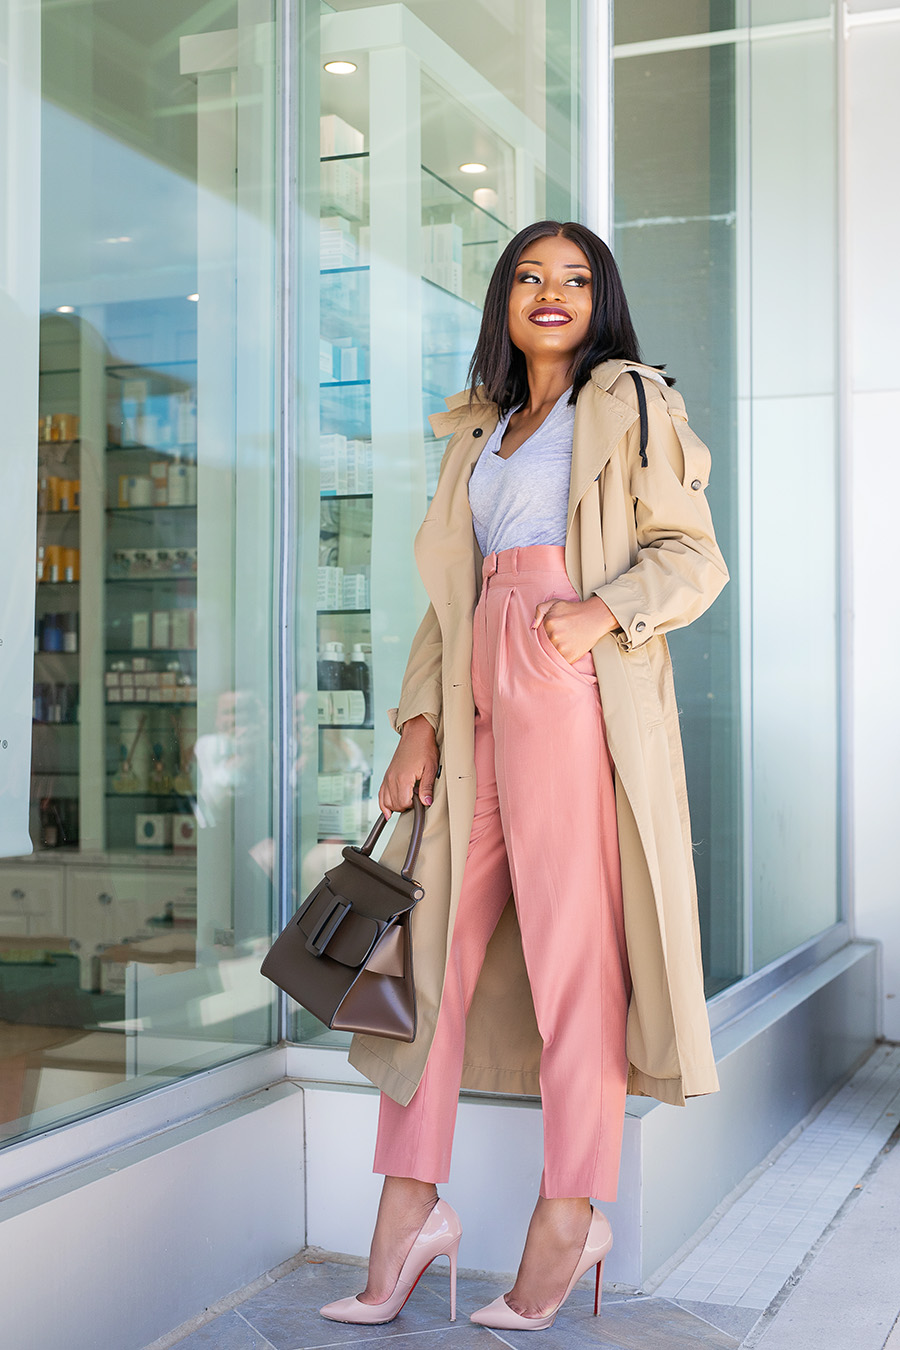 stella-adewunmi-of-jadore-fashion-shares-Versatile-Coats-You-Need-For-Work-This-Fall